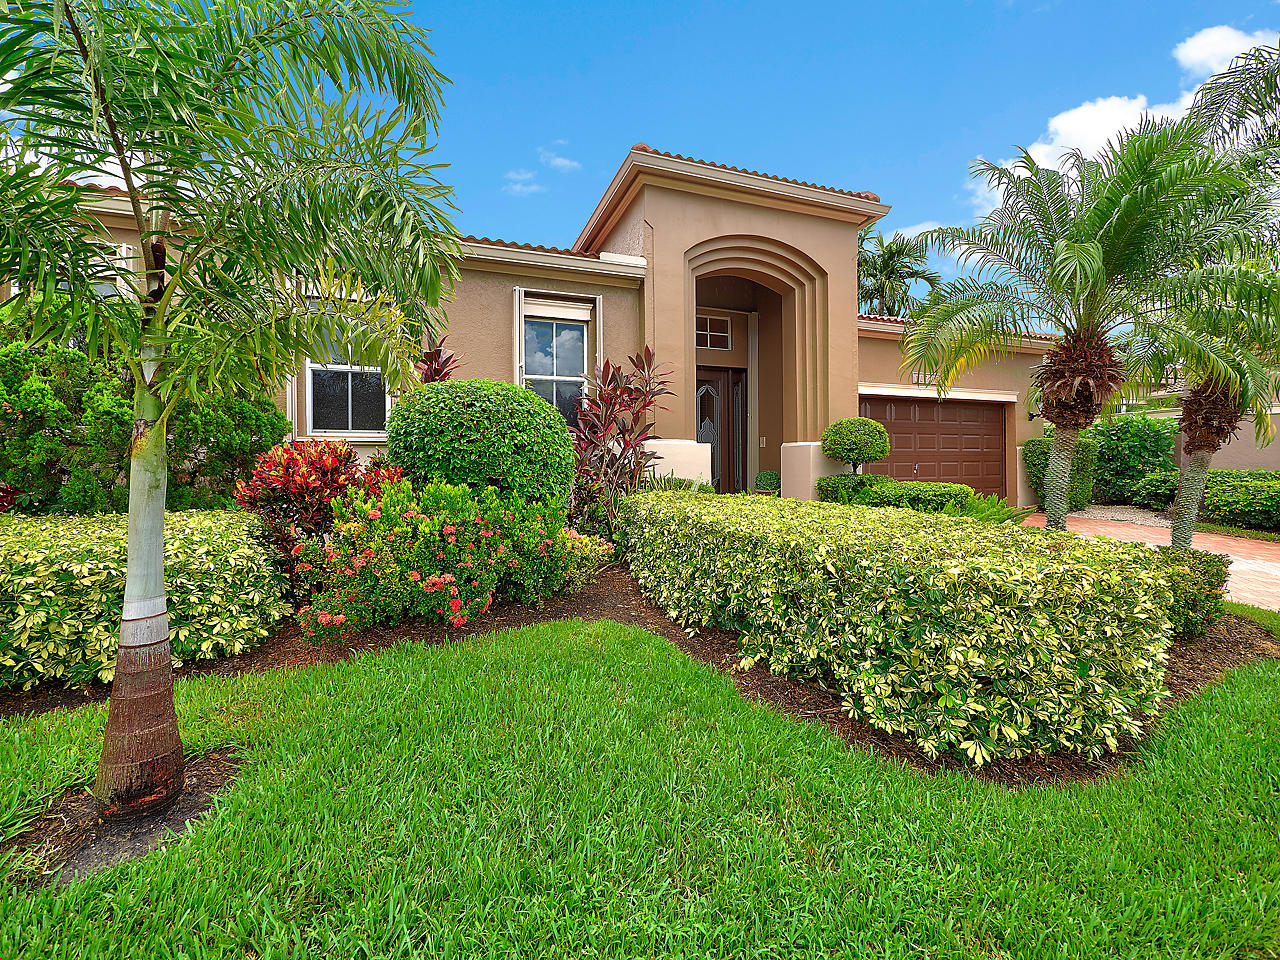 10780 Waterford Place, West Palm Beach, Florida 33412, 3 Bedrooms Bedrooms, ,2 BathroomsBathrooms,A,Single family,Waterford,RX-10456125